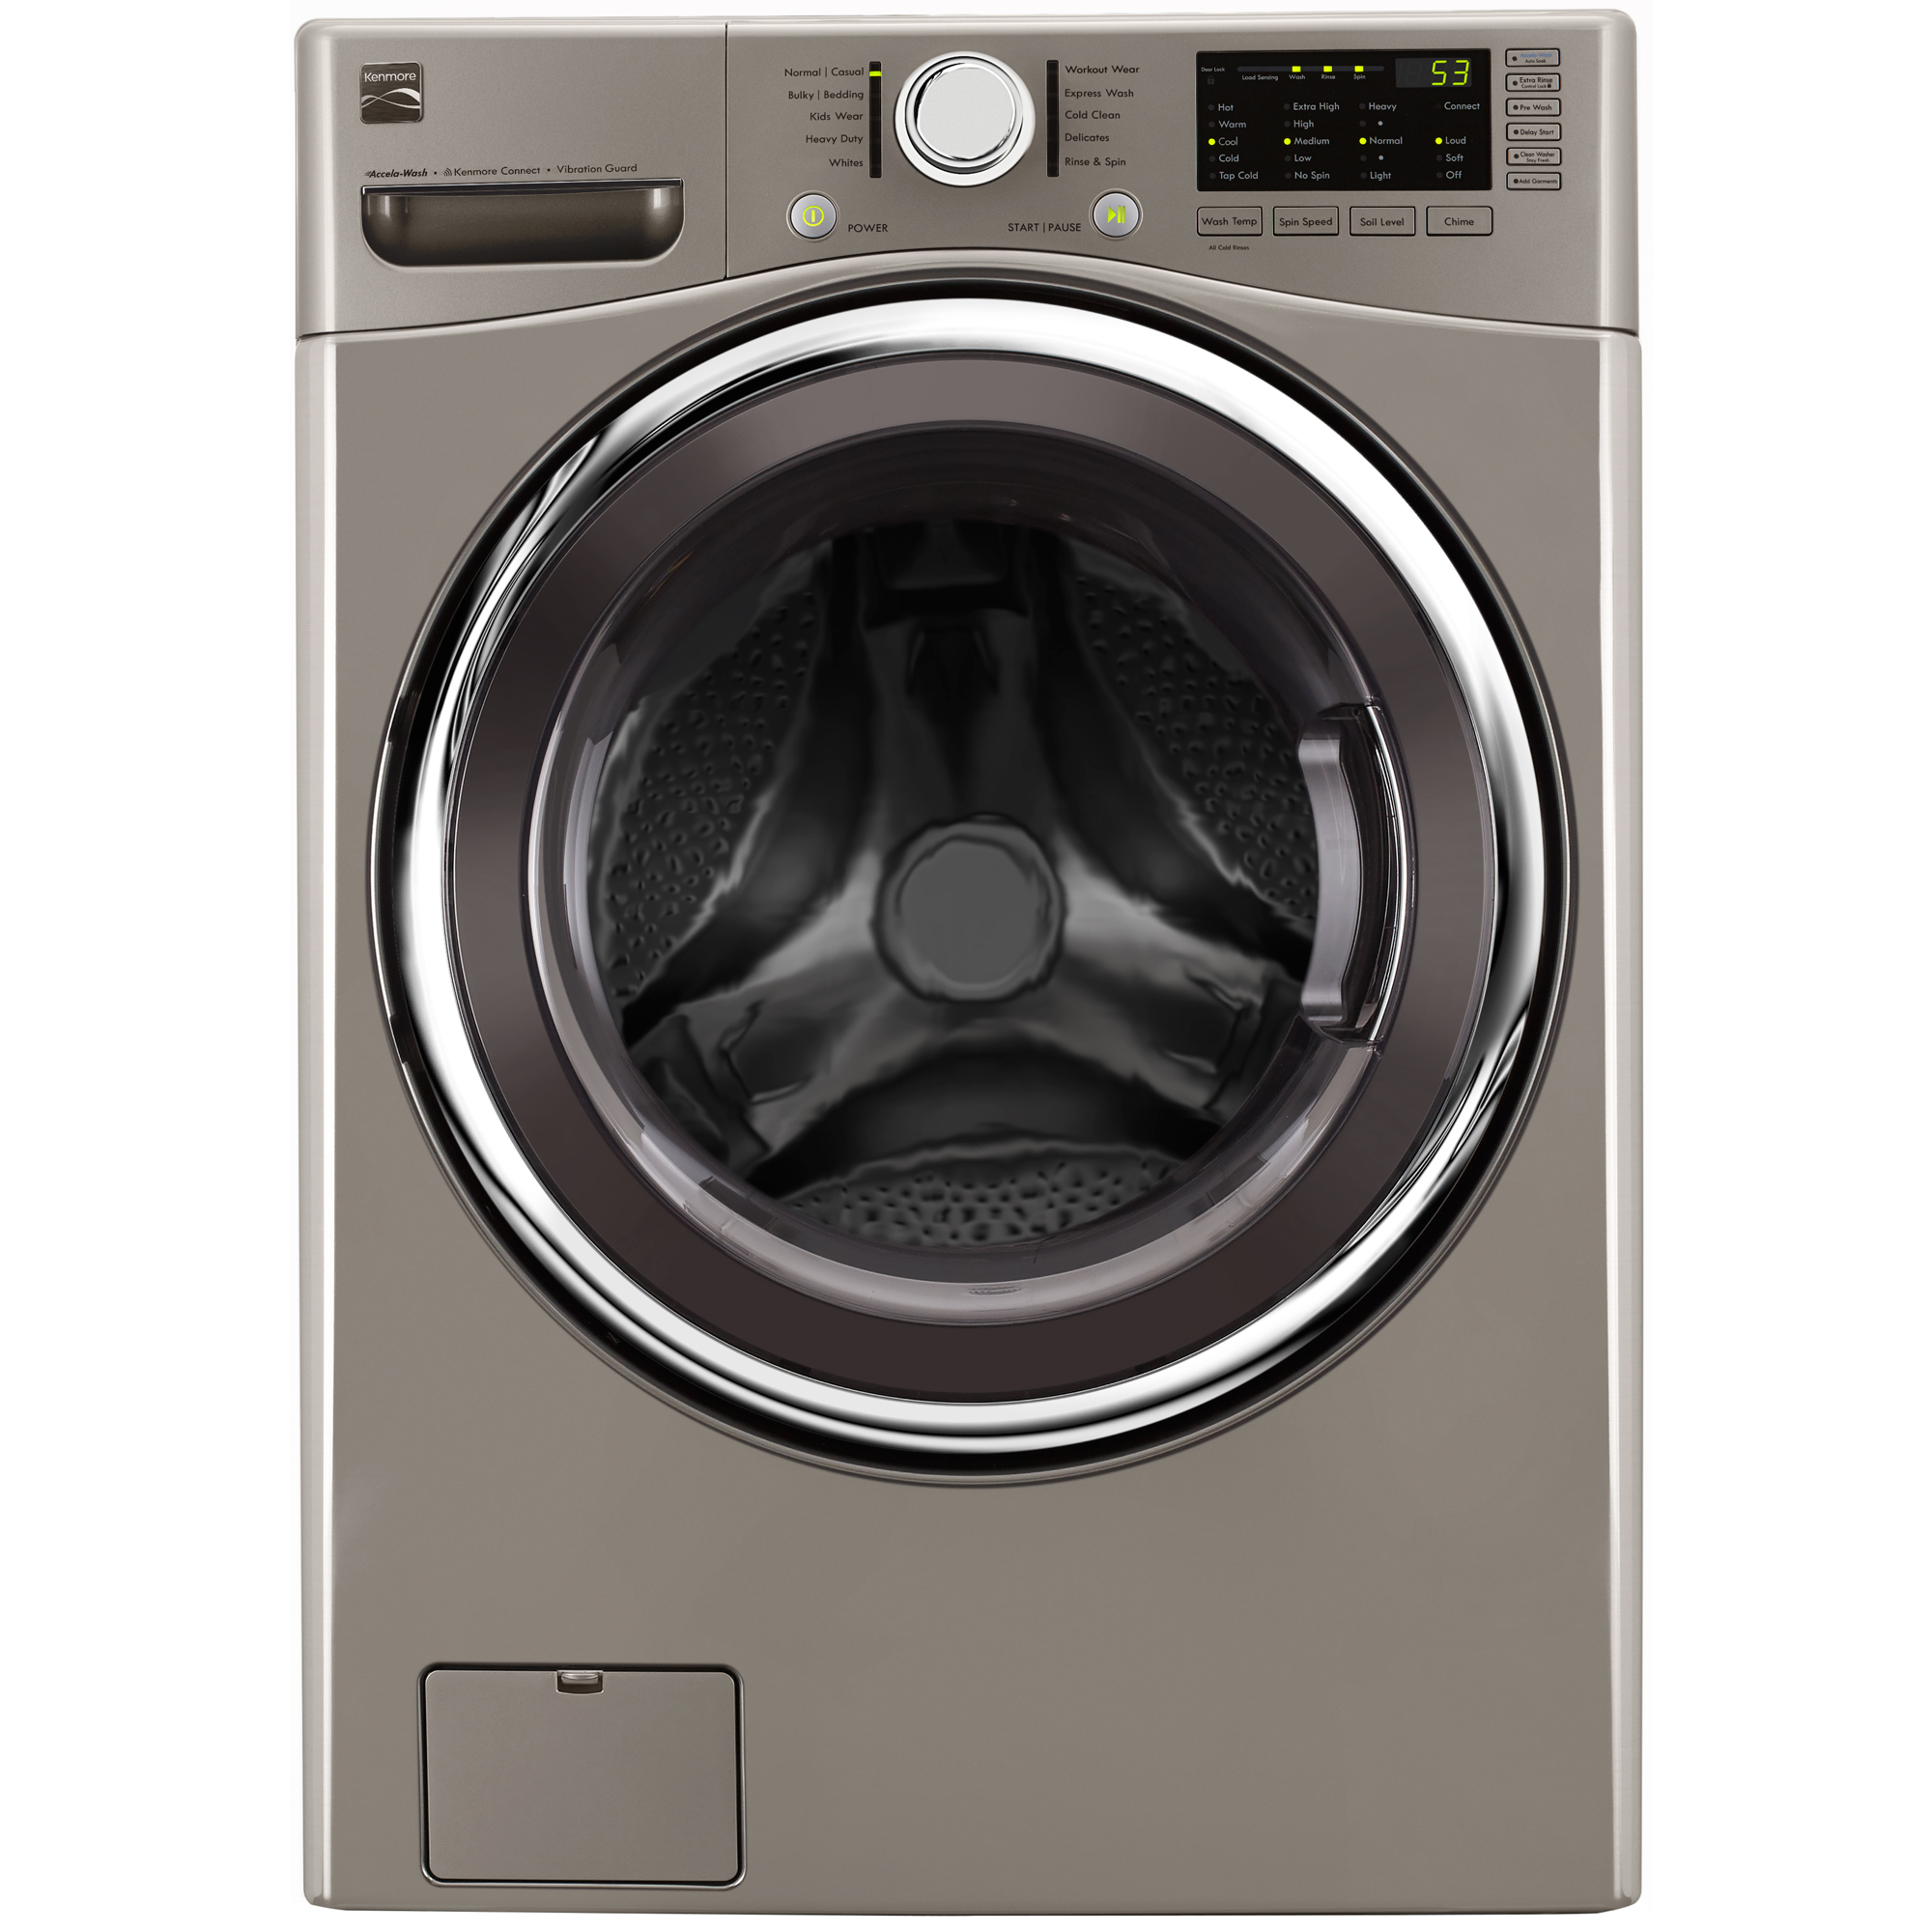 41393-4-5-cu-ft-Front-Load-Washer-w-Accela-Wash-Metallic-Silver